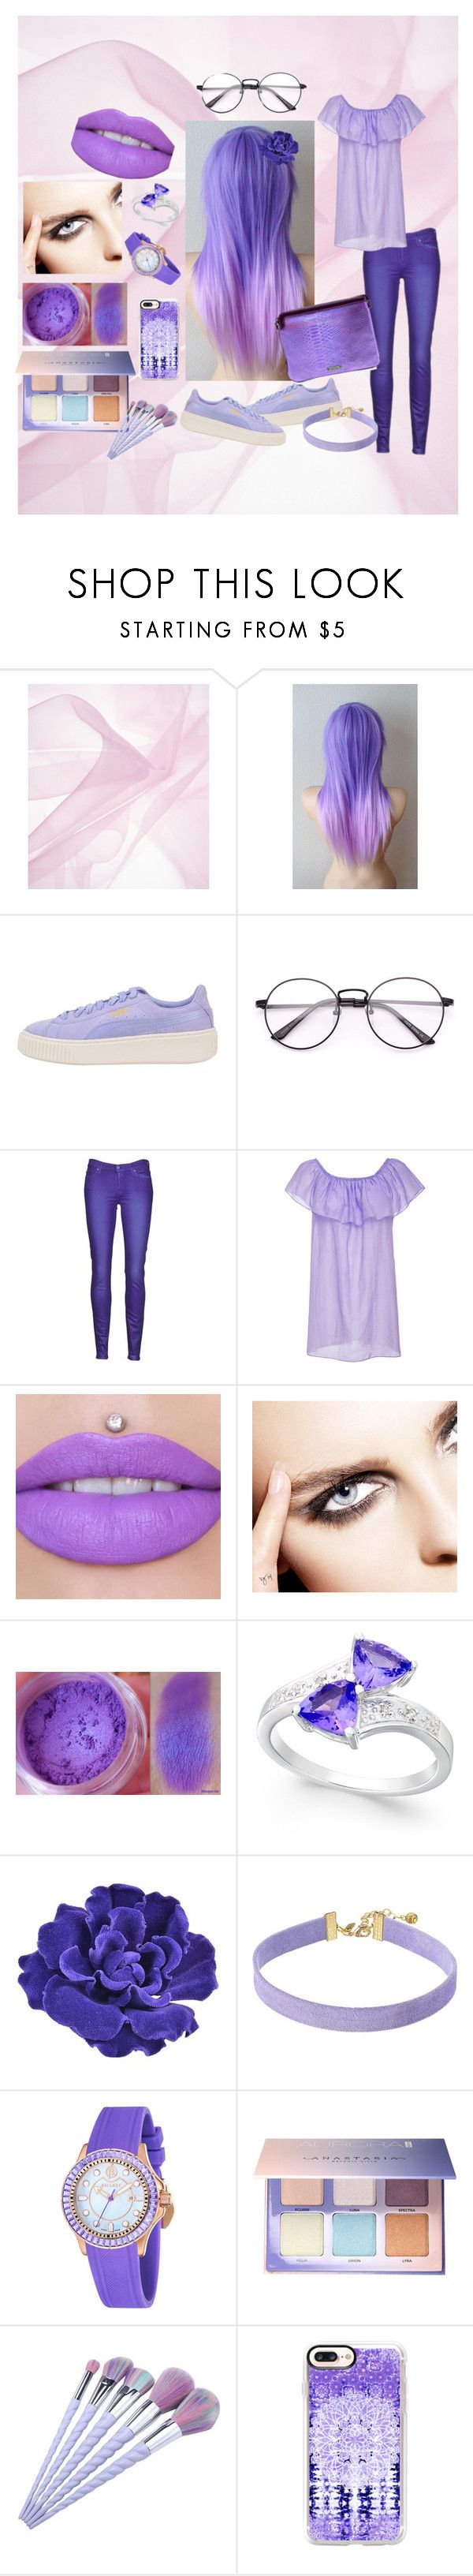 """Purple Is The New Black"" by contagious-skittles ❤ liked on Polyvore featuring Puma, 7 For All Mankind, Soler, Chanel, Vanessa Mooney, Ballast, Anastasia Beverly Hills, Casetify and Mohzy"